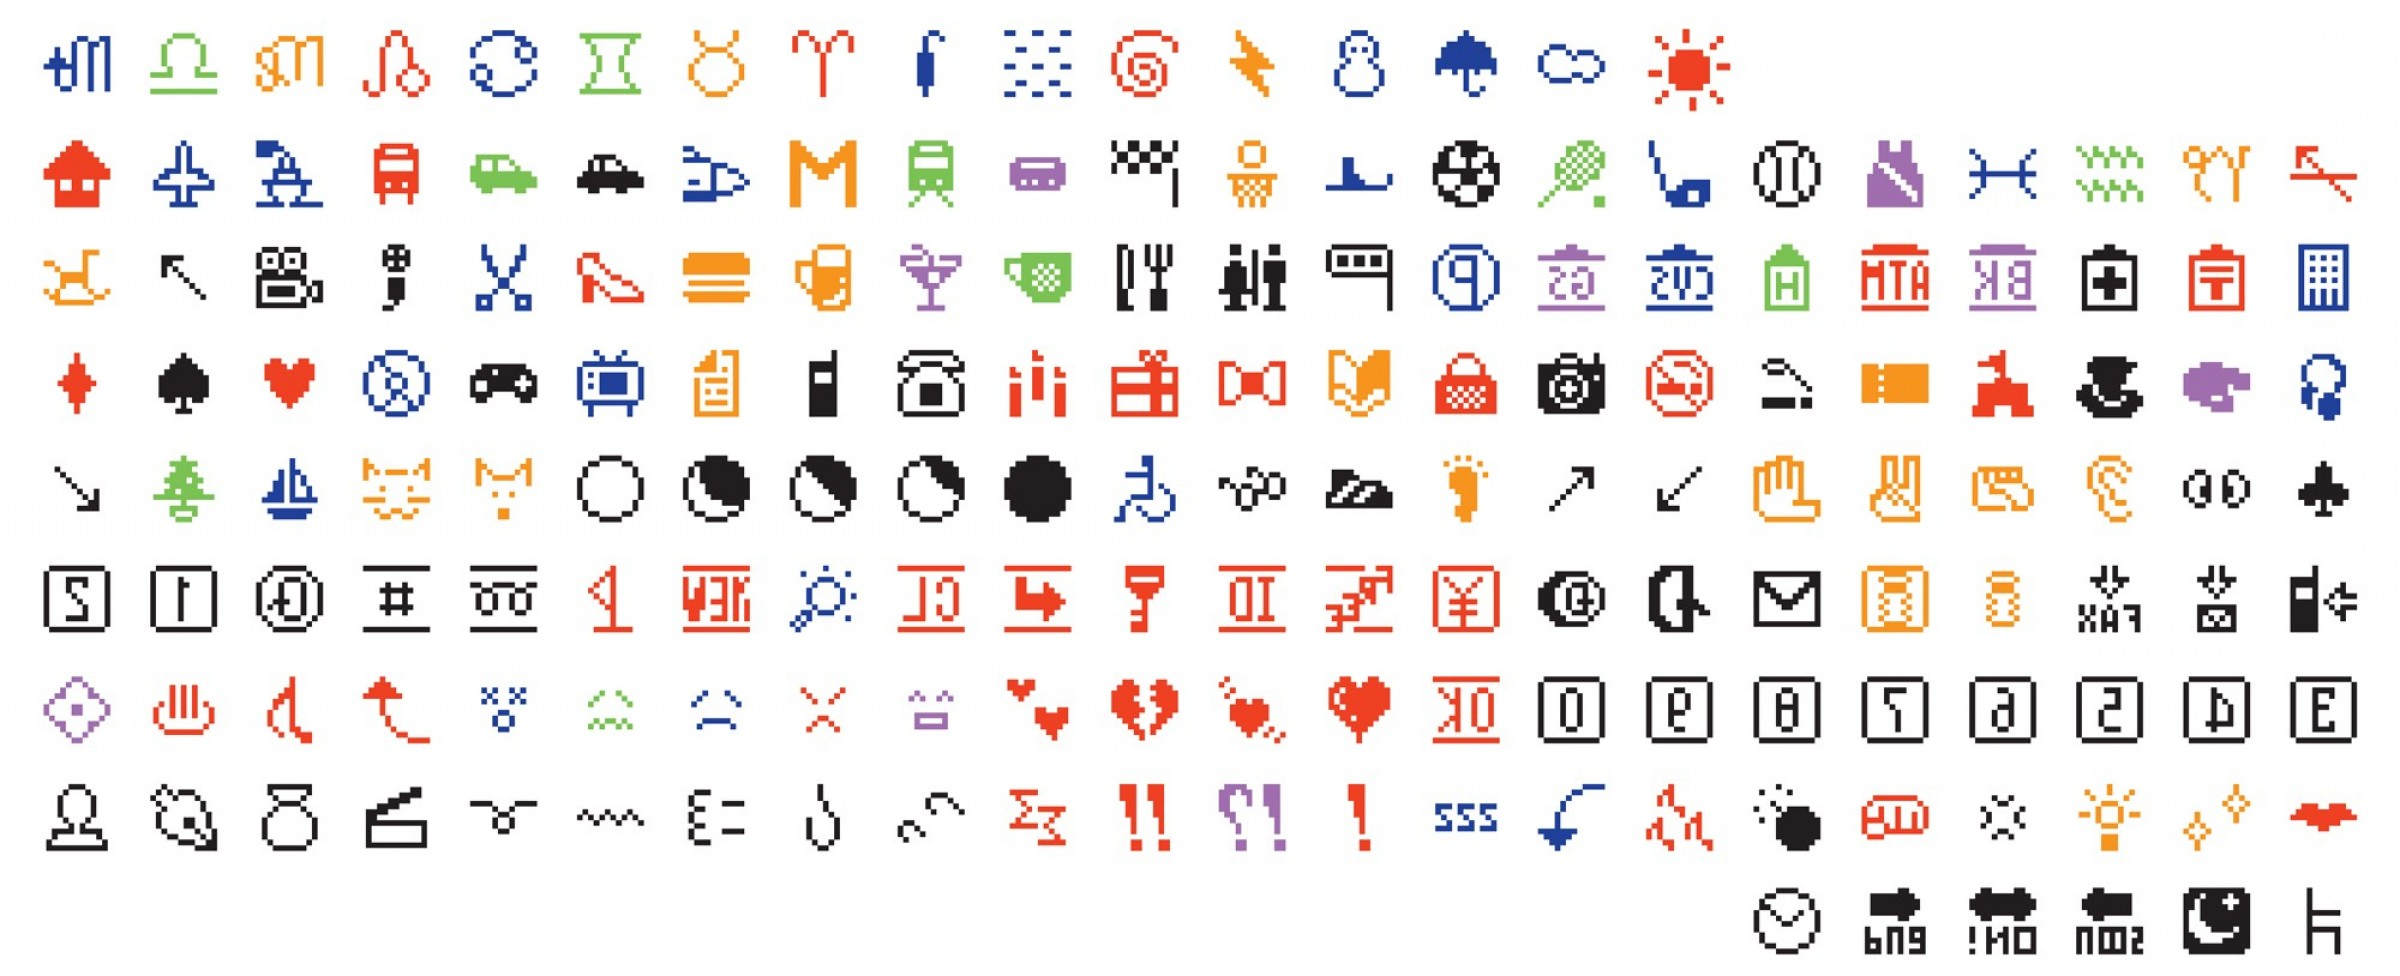 IPhone Emoji Vectors Van: The Original Emoji Set Has Been Added To The Museum Of Modern Arts Collection Cef